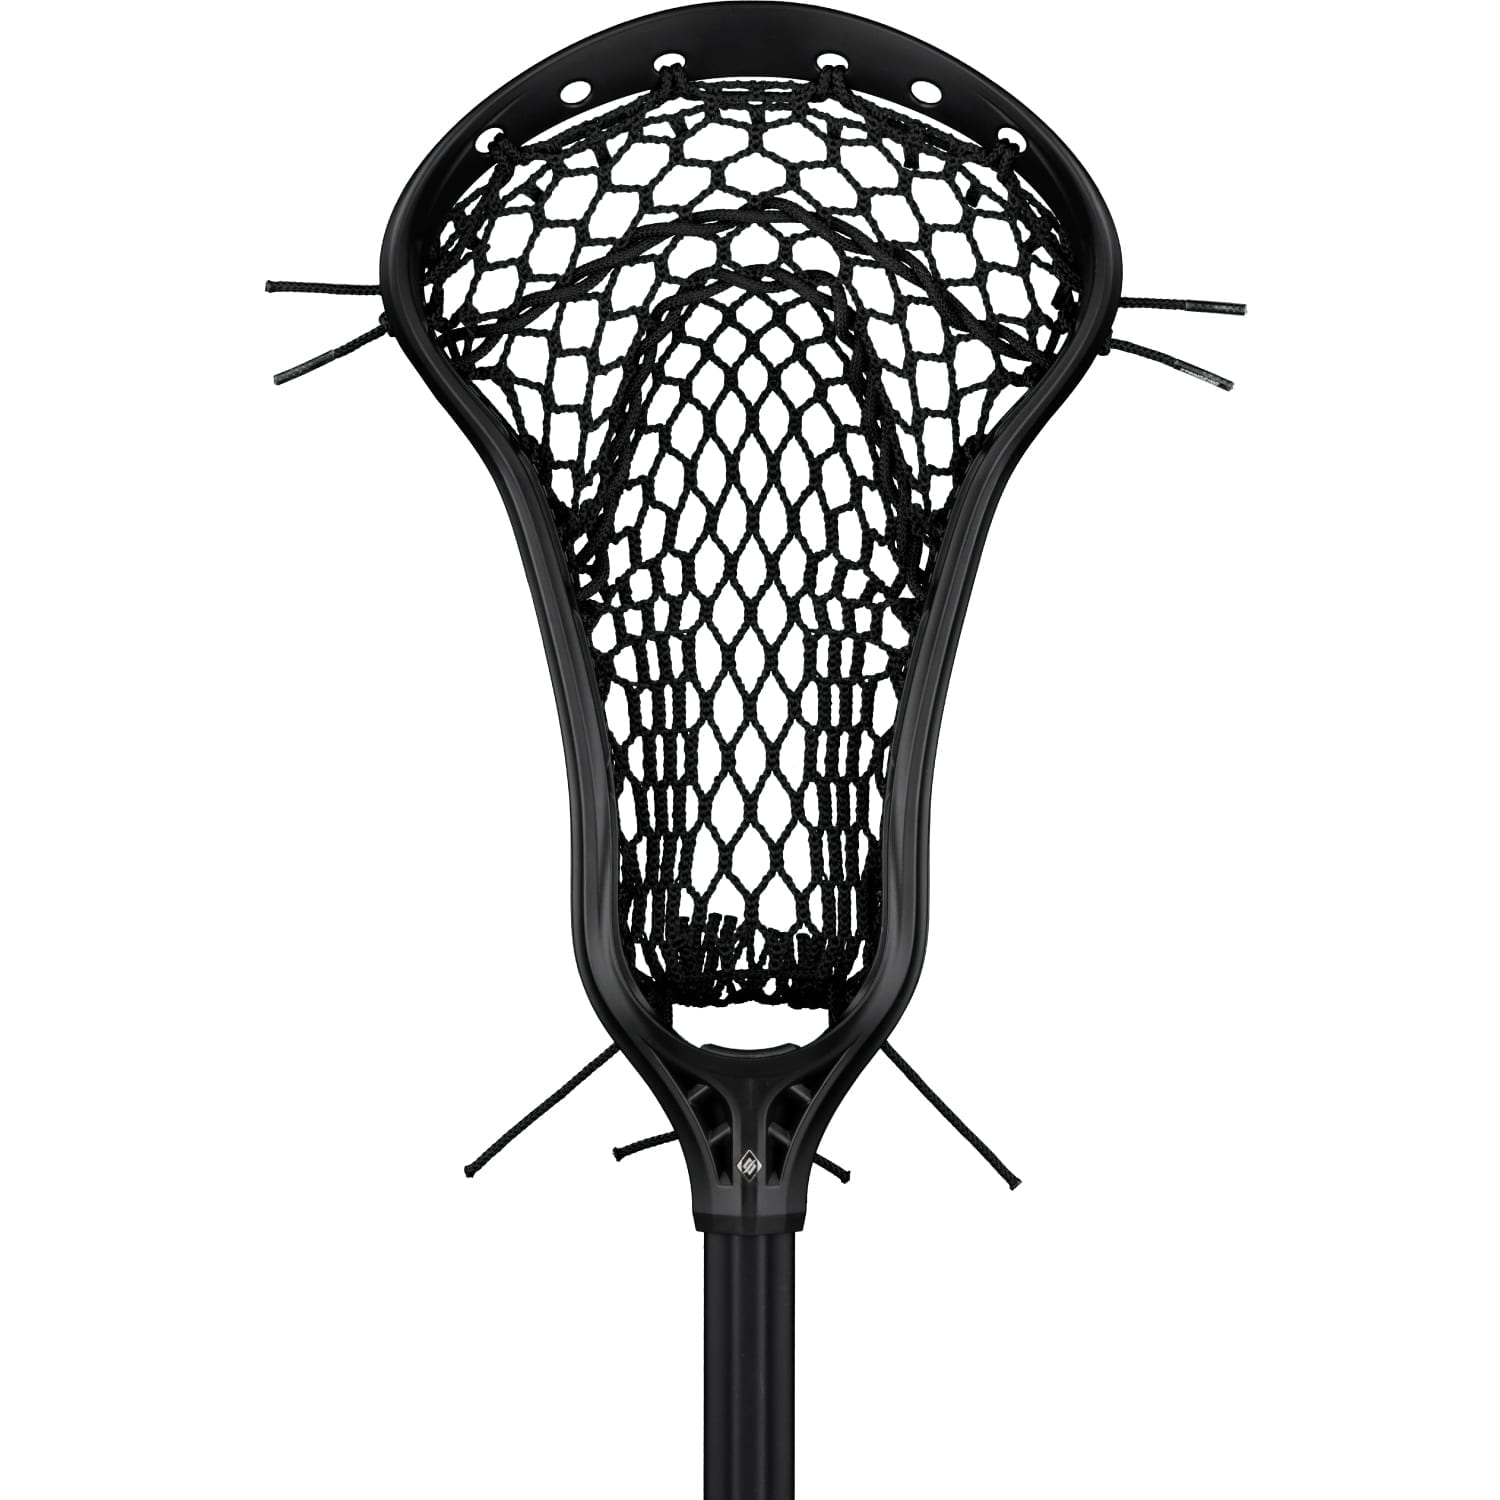 StringKing-Womens-Complete-2-Offense-Front-Strung-Black1500.jpg